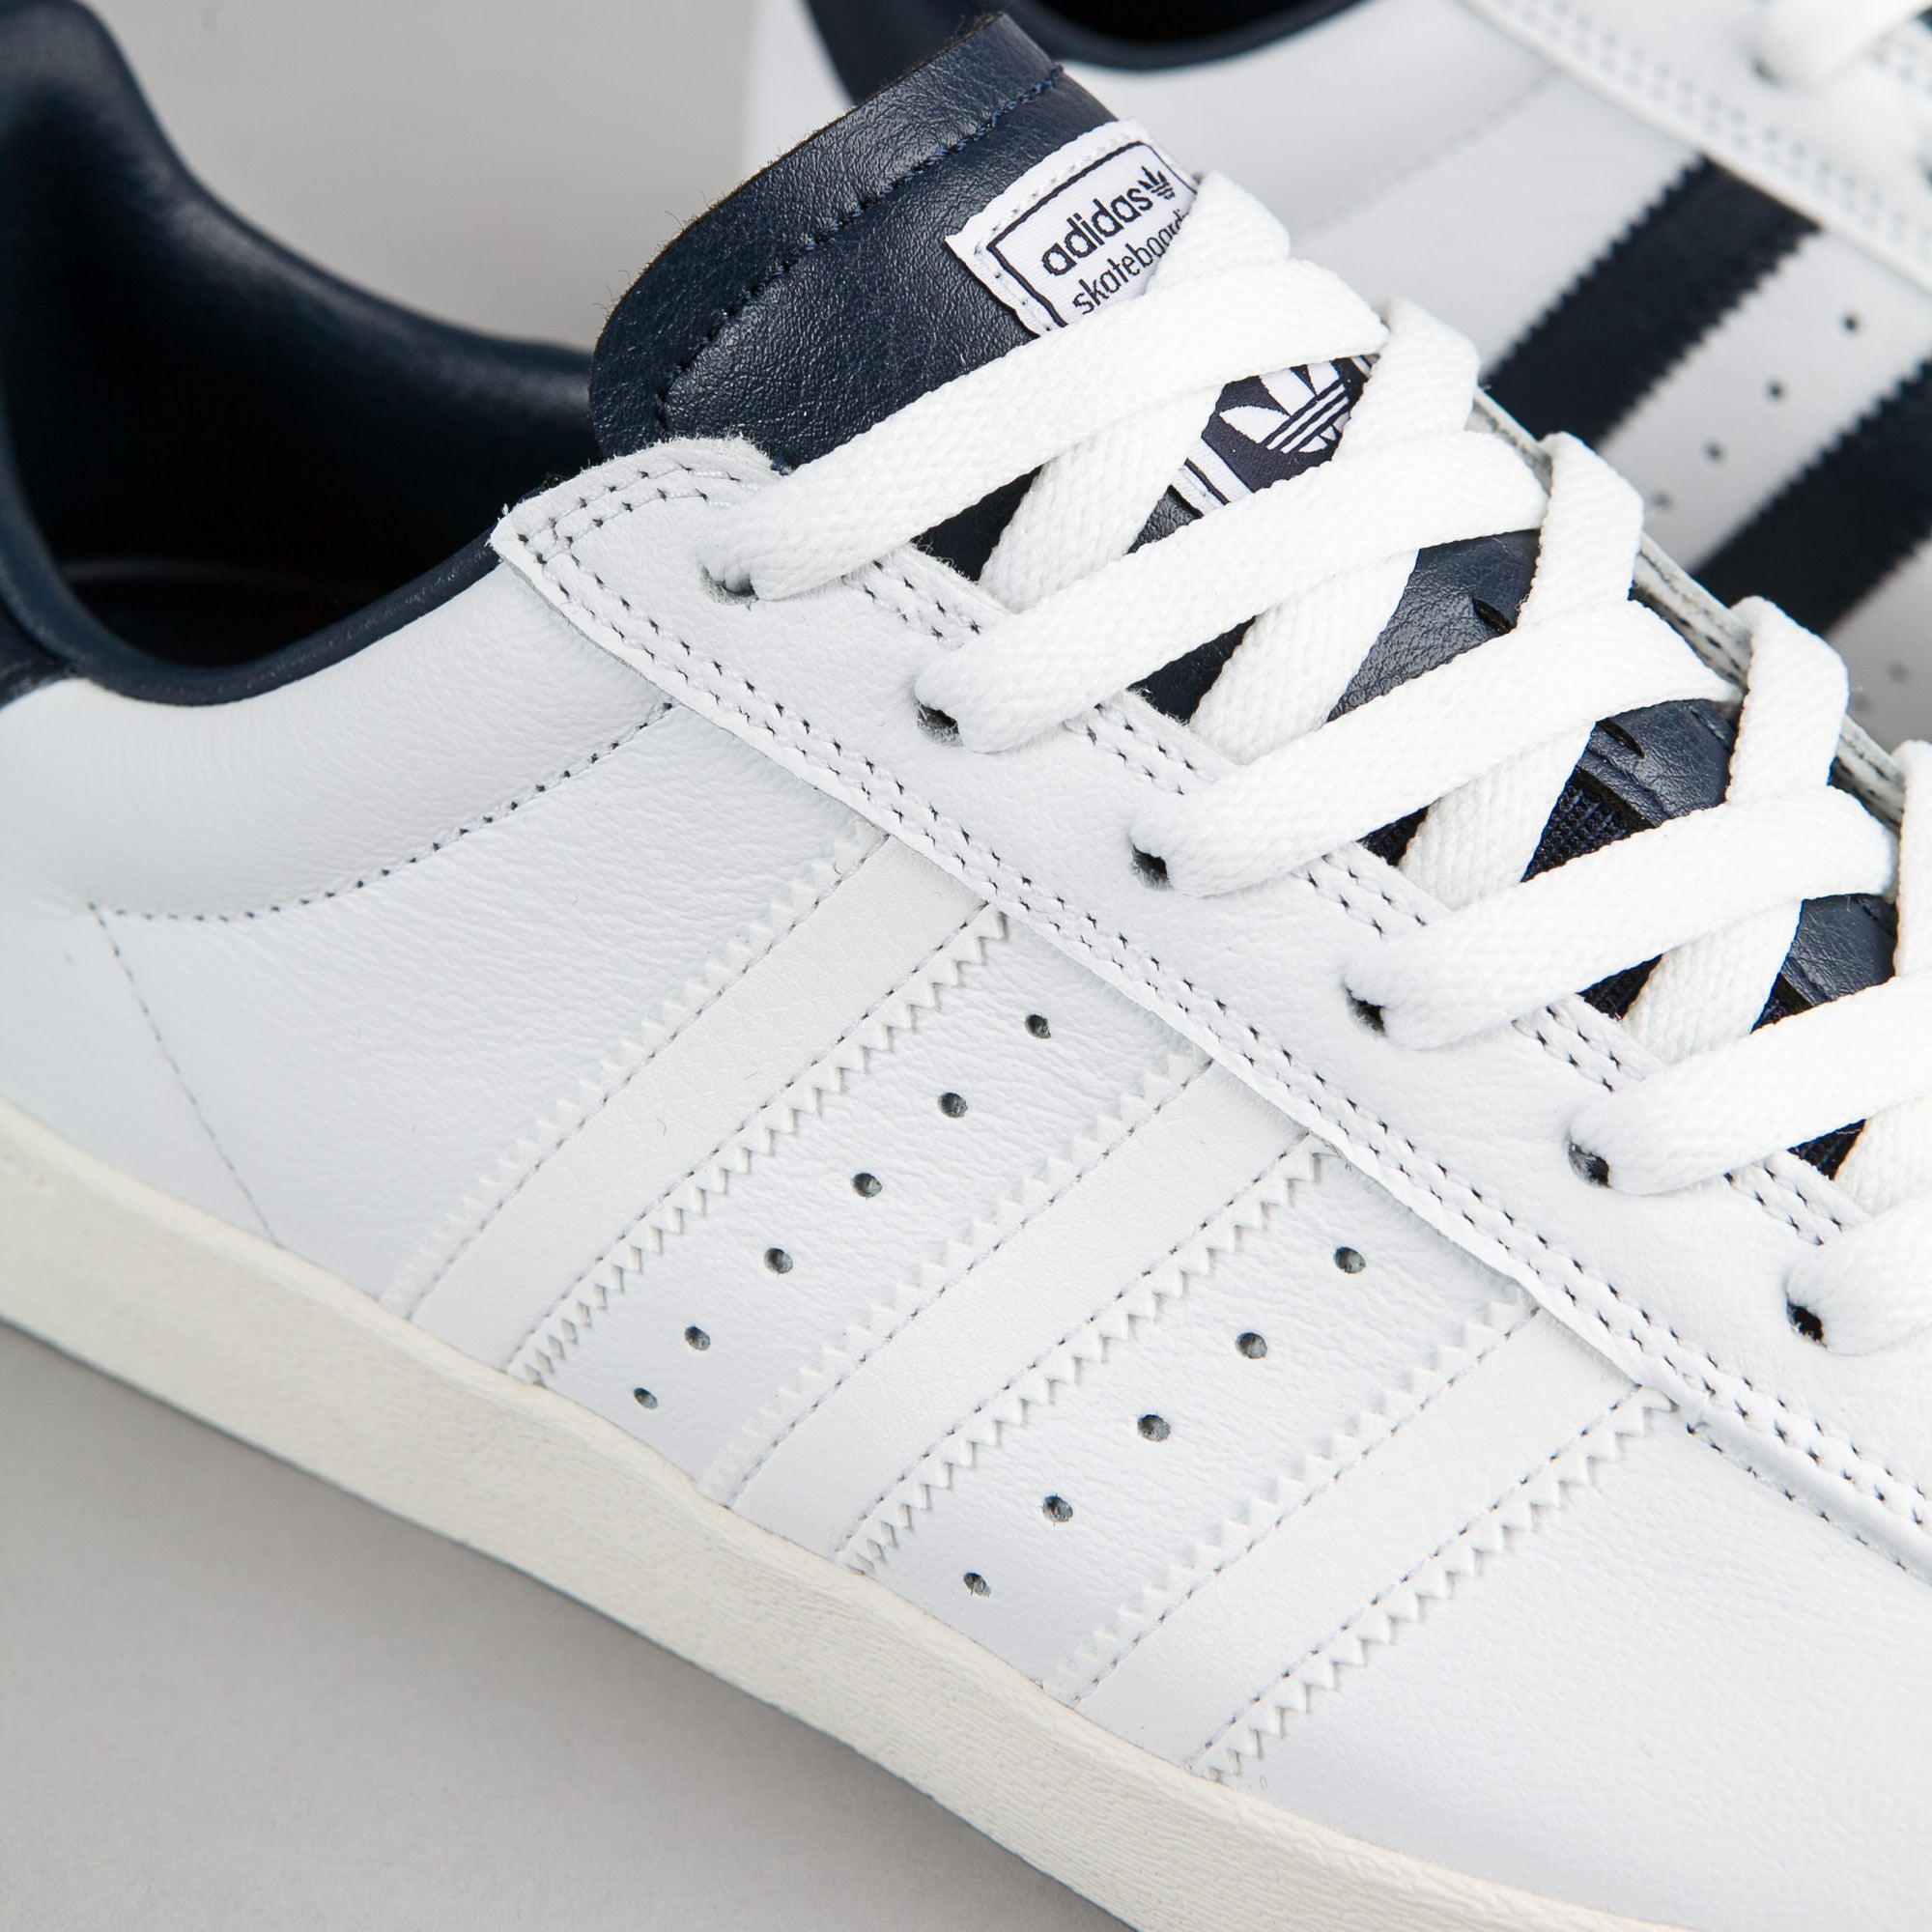 A First Look At The adidas Originals Superstar 80s Icey Pink From The